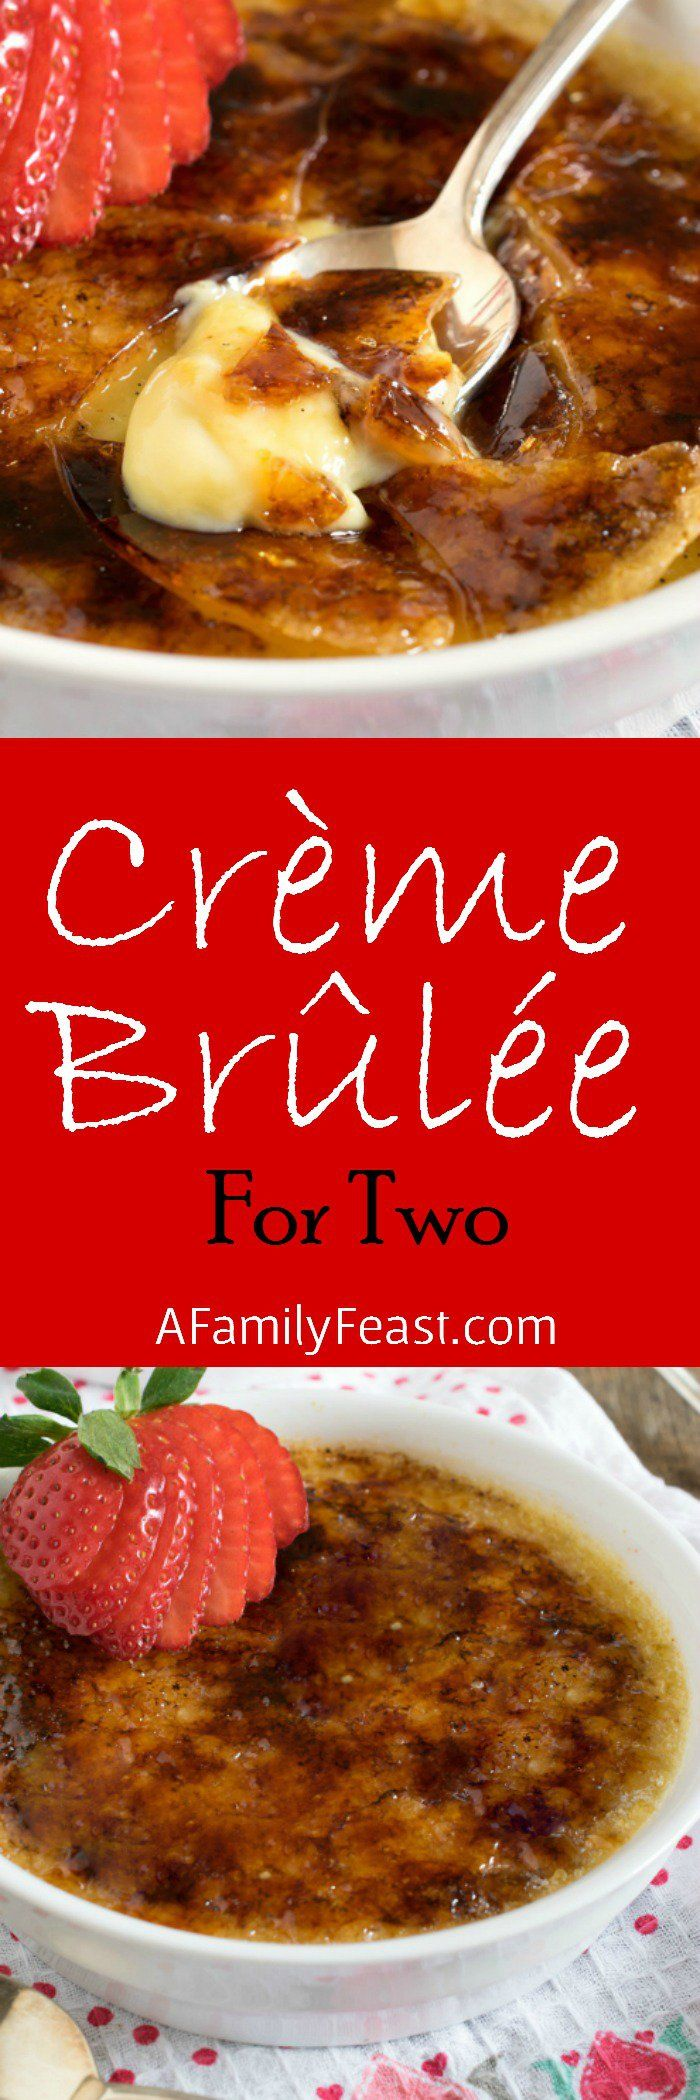 Crème Brûlée for Two - This classic recipe has been sized down to two servings. Perfect dessert for a special, romantic meal!